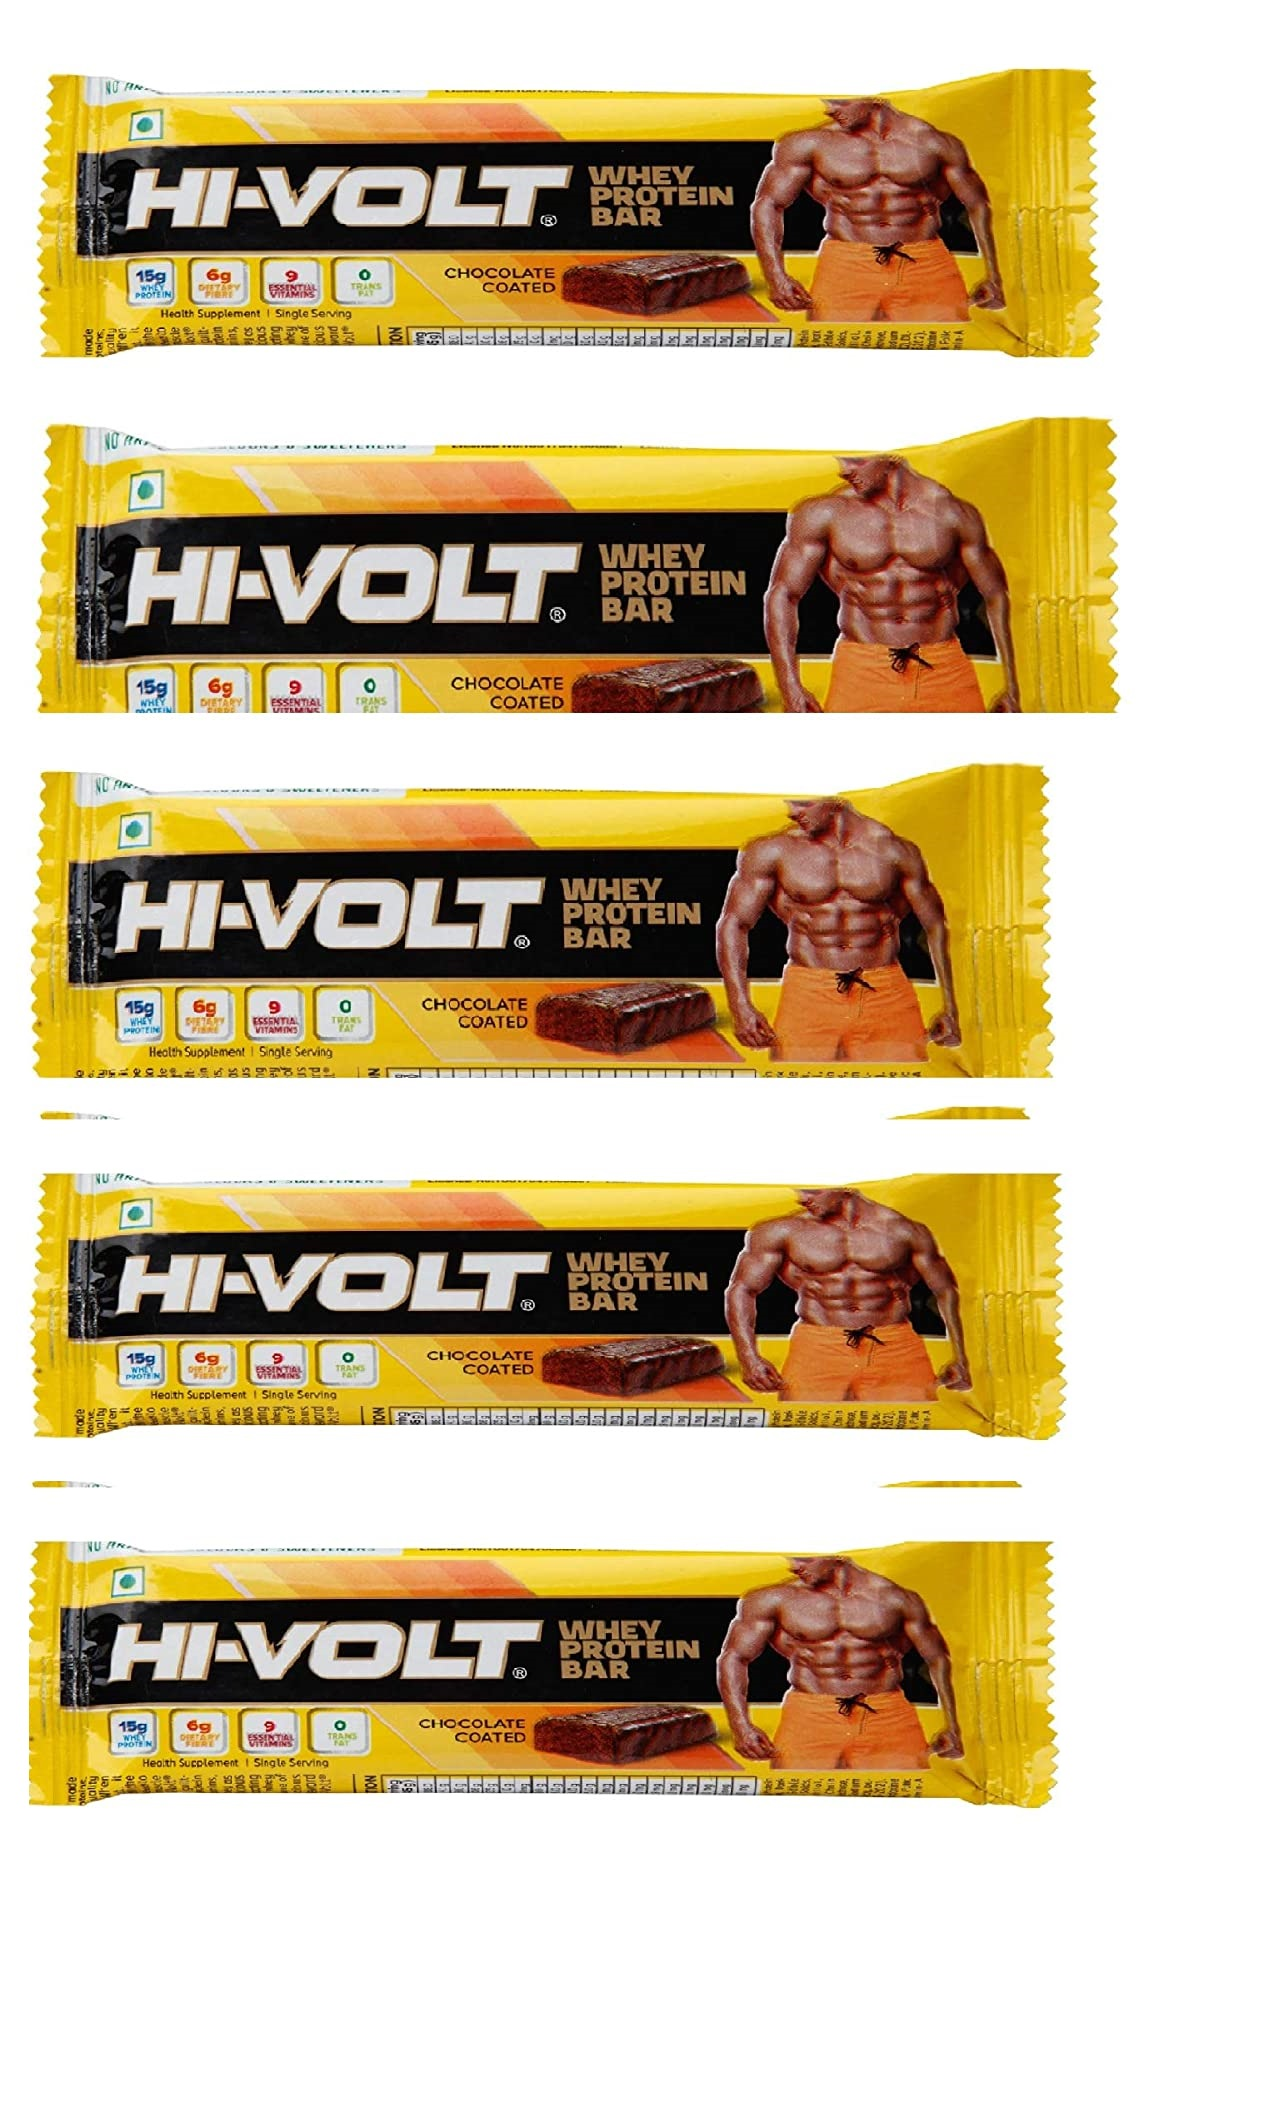 HI-VOLT WHEY PROTEIN BAR CHOCOLATE COATED 45 G Buy 5 Get 5 free